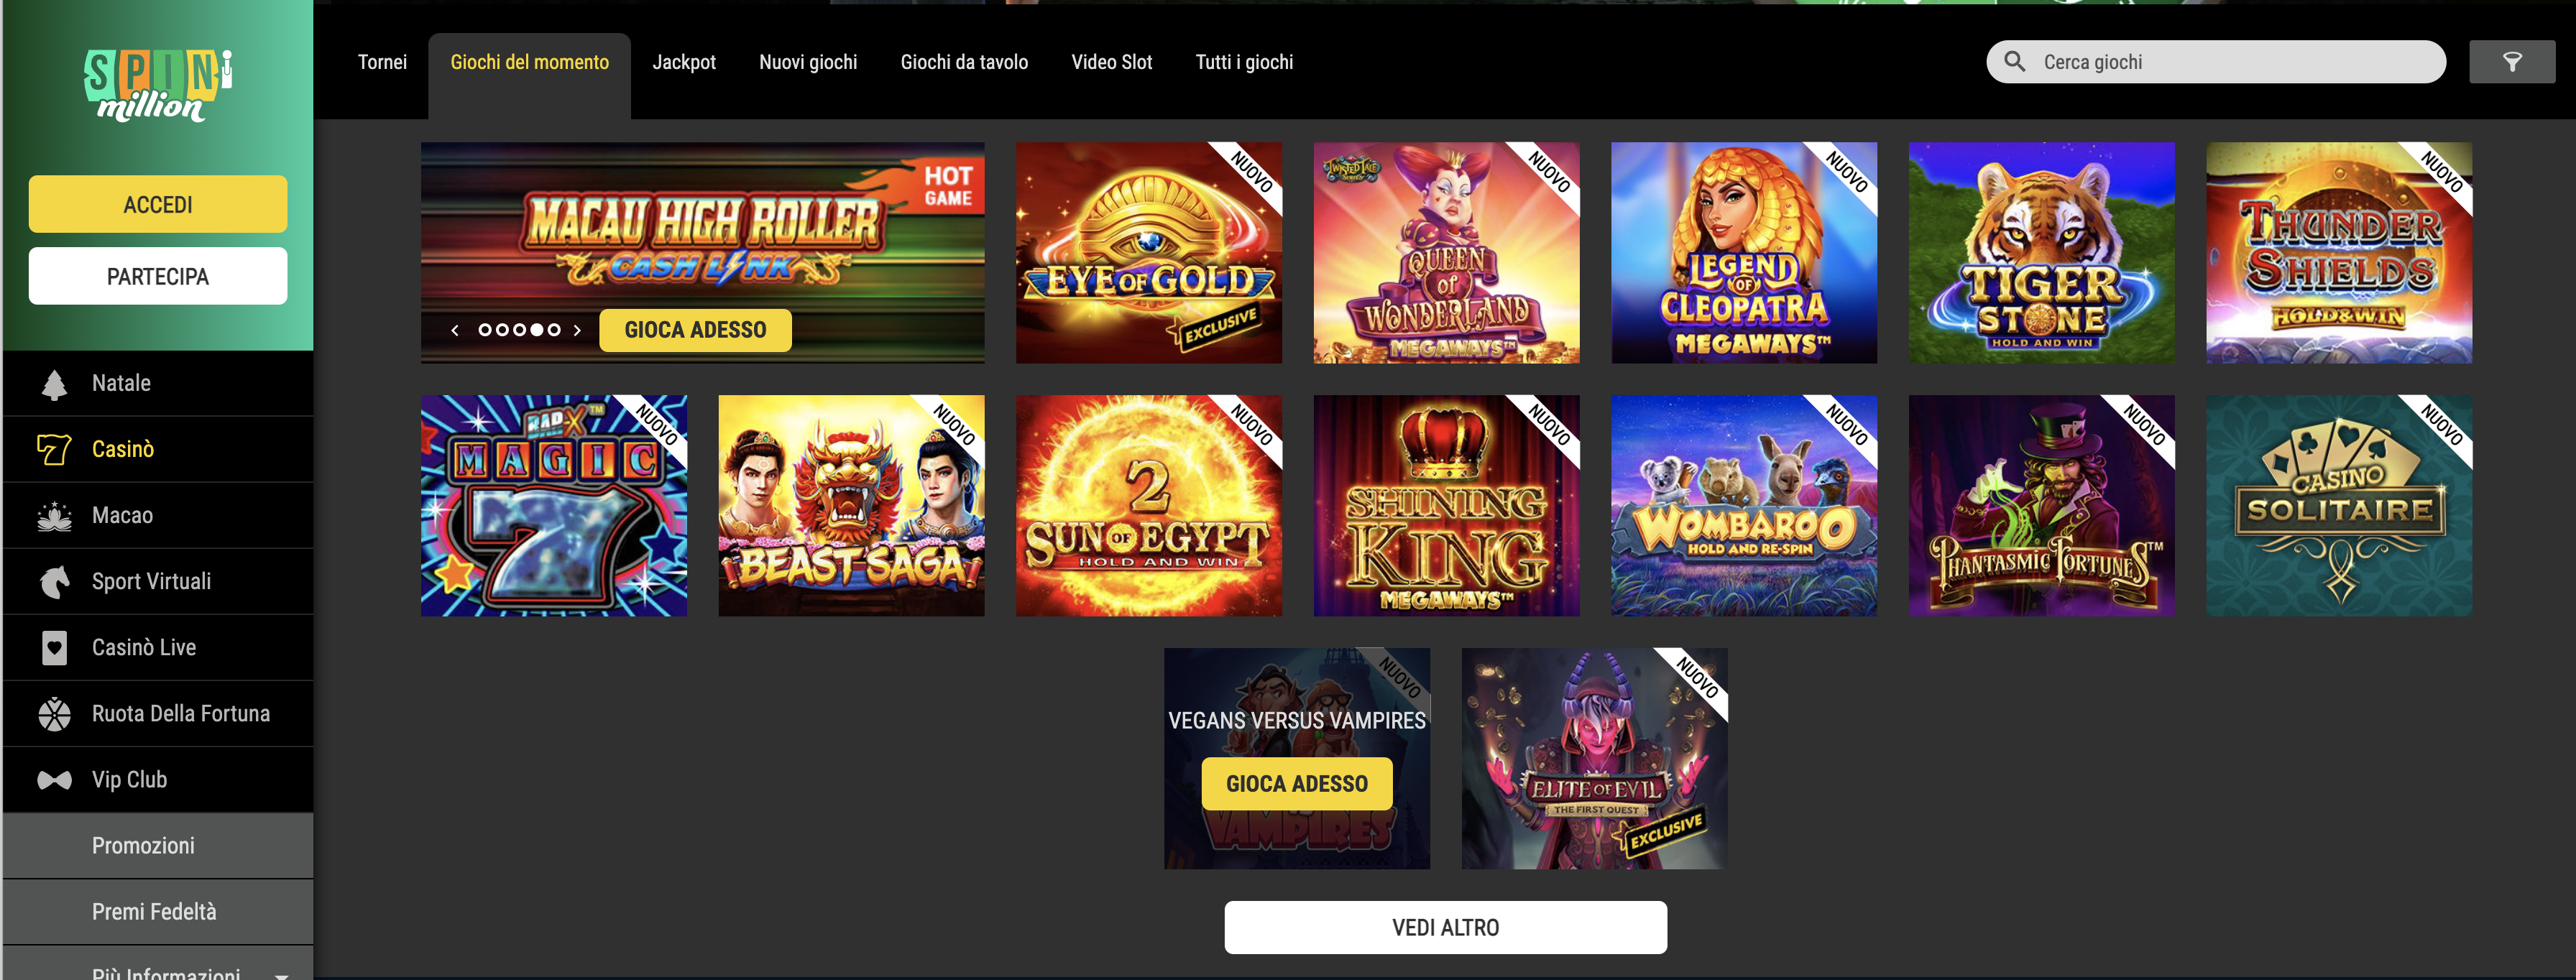 spin million casino giochi